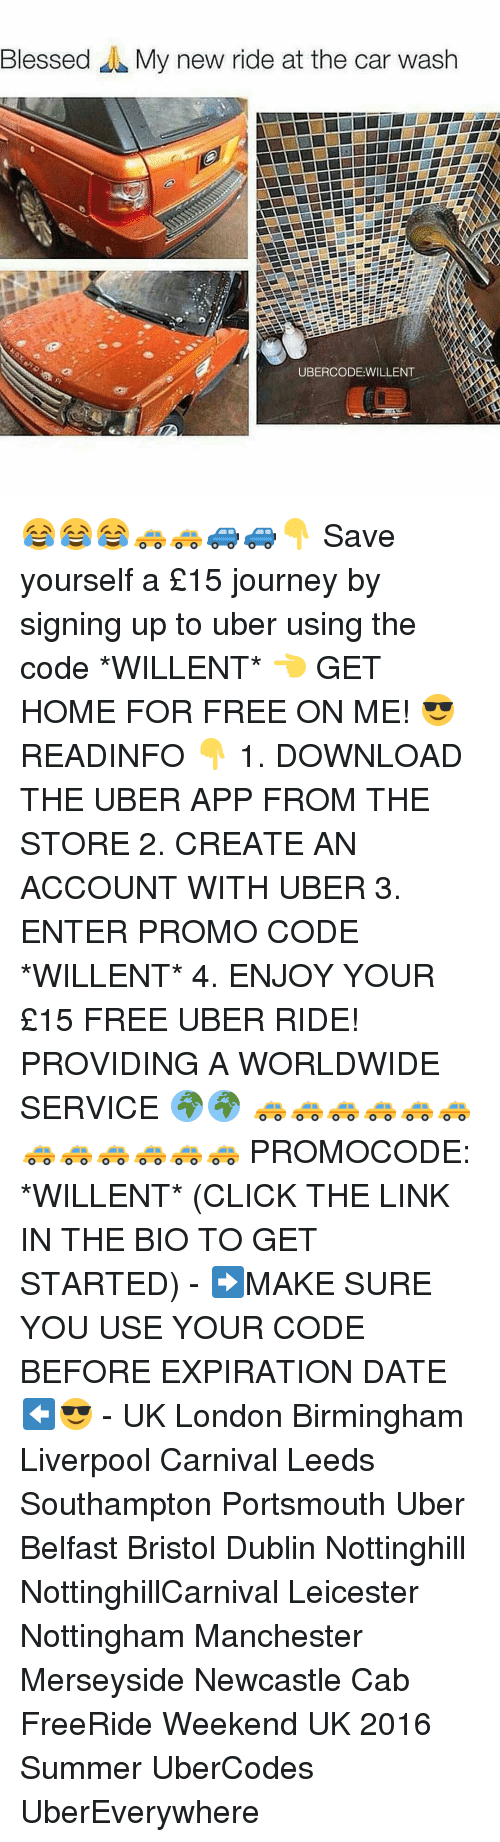 Memes, 🤖, and The Link: Blessed My new ride at the car wash  UBERCODE WILLENT 😂😂😂🚕🚕🚙🚙👇 Save yourself a £15 journey by signing up to uber using the code *WILLENT* 👈 GET HOME FOR FREE ON ME! 😎 READINFO 👇 1. DOWNLOAD THE UBER APP FROM THE STORE 2. CREATE AN ACCOUNT WITH UBER 3. ENTER PROMO CODE *WILLENT* 4. ENJOY YOUR £15 FREE UBER RIDE! PROVIDING A WORLDWIDE SERVICE 🌍🌍 🚕🚕🚕🚕🚕🚕🚕🚕🚕🚕🚕🚕 PROMOCODE: *WILLENT* (CLICK THE LINK IN THE BIO TO GET STARTED) - ➡️MAKE SURE YOU USE YOUR CODE BEFORE EXPIRATION DATE ⬅️😎 - UK London Birmingham Liverpool Carnival Leeds Southampton Portsmouth Uber Belfast Bristol Dublin Nottinghill NottinghillCarnival Leicester Nottingham Manchester Merseyside Newcastle Cab FreeRide Weekend UK 2016 Summer UberCodes UberEverywhere